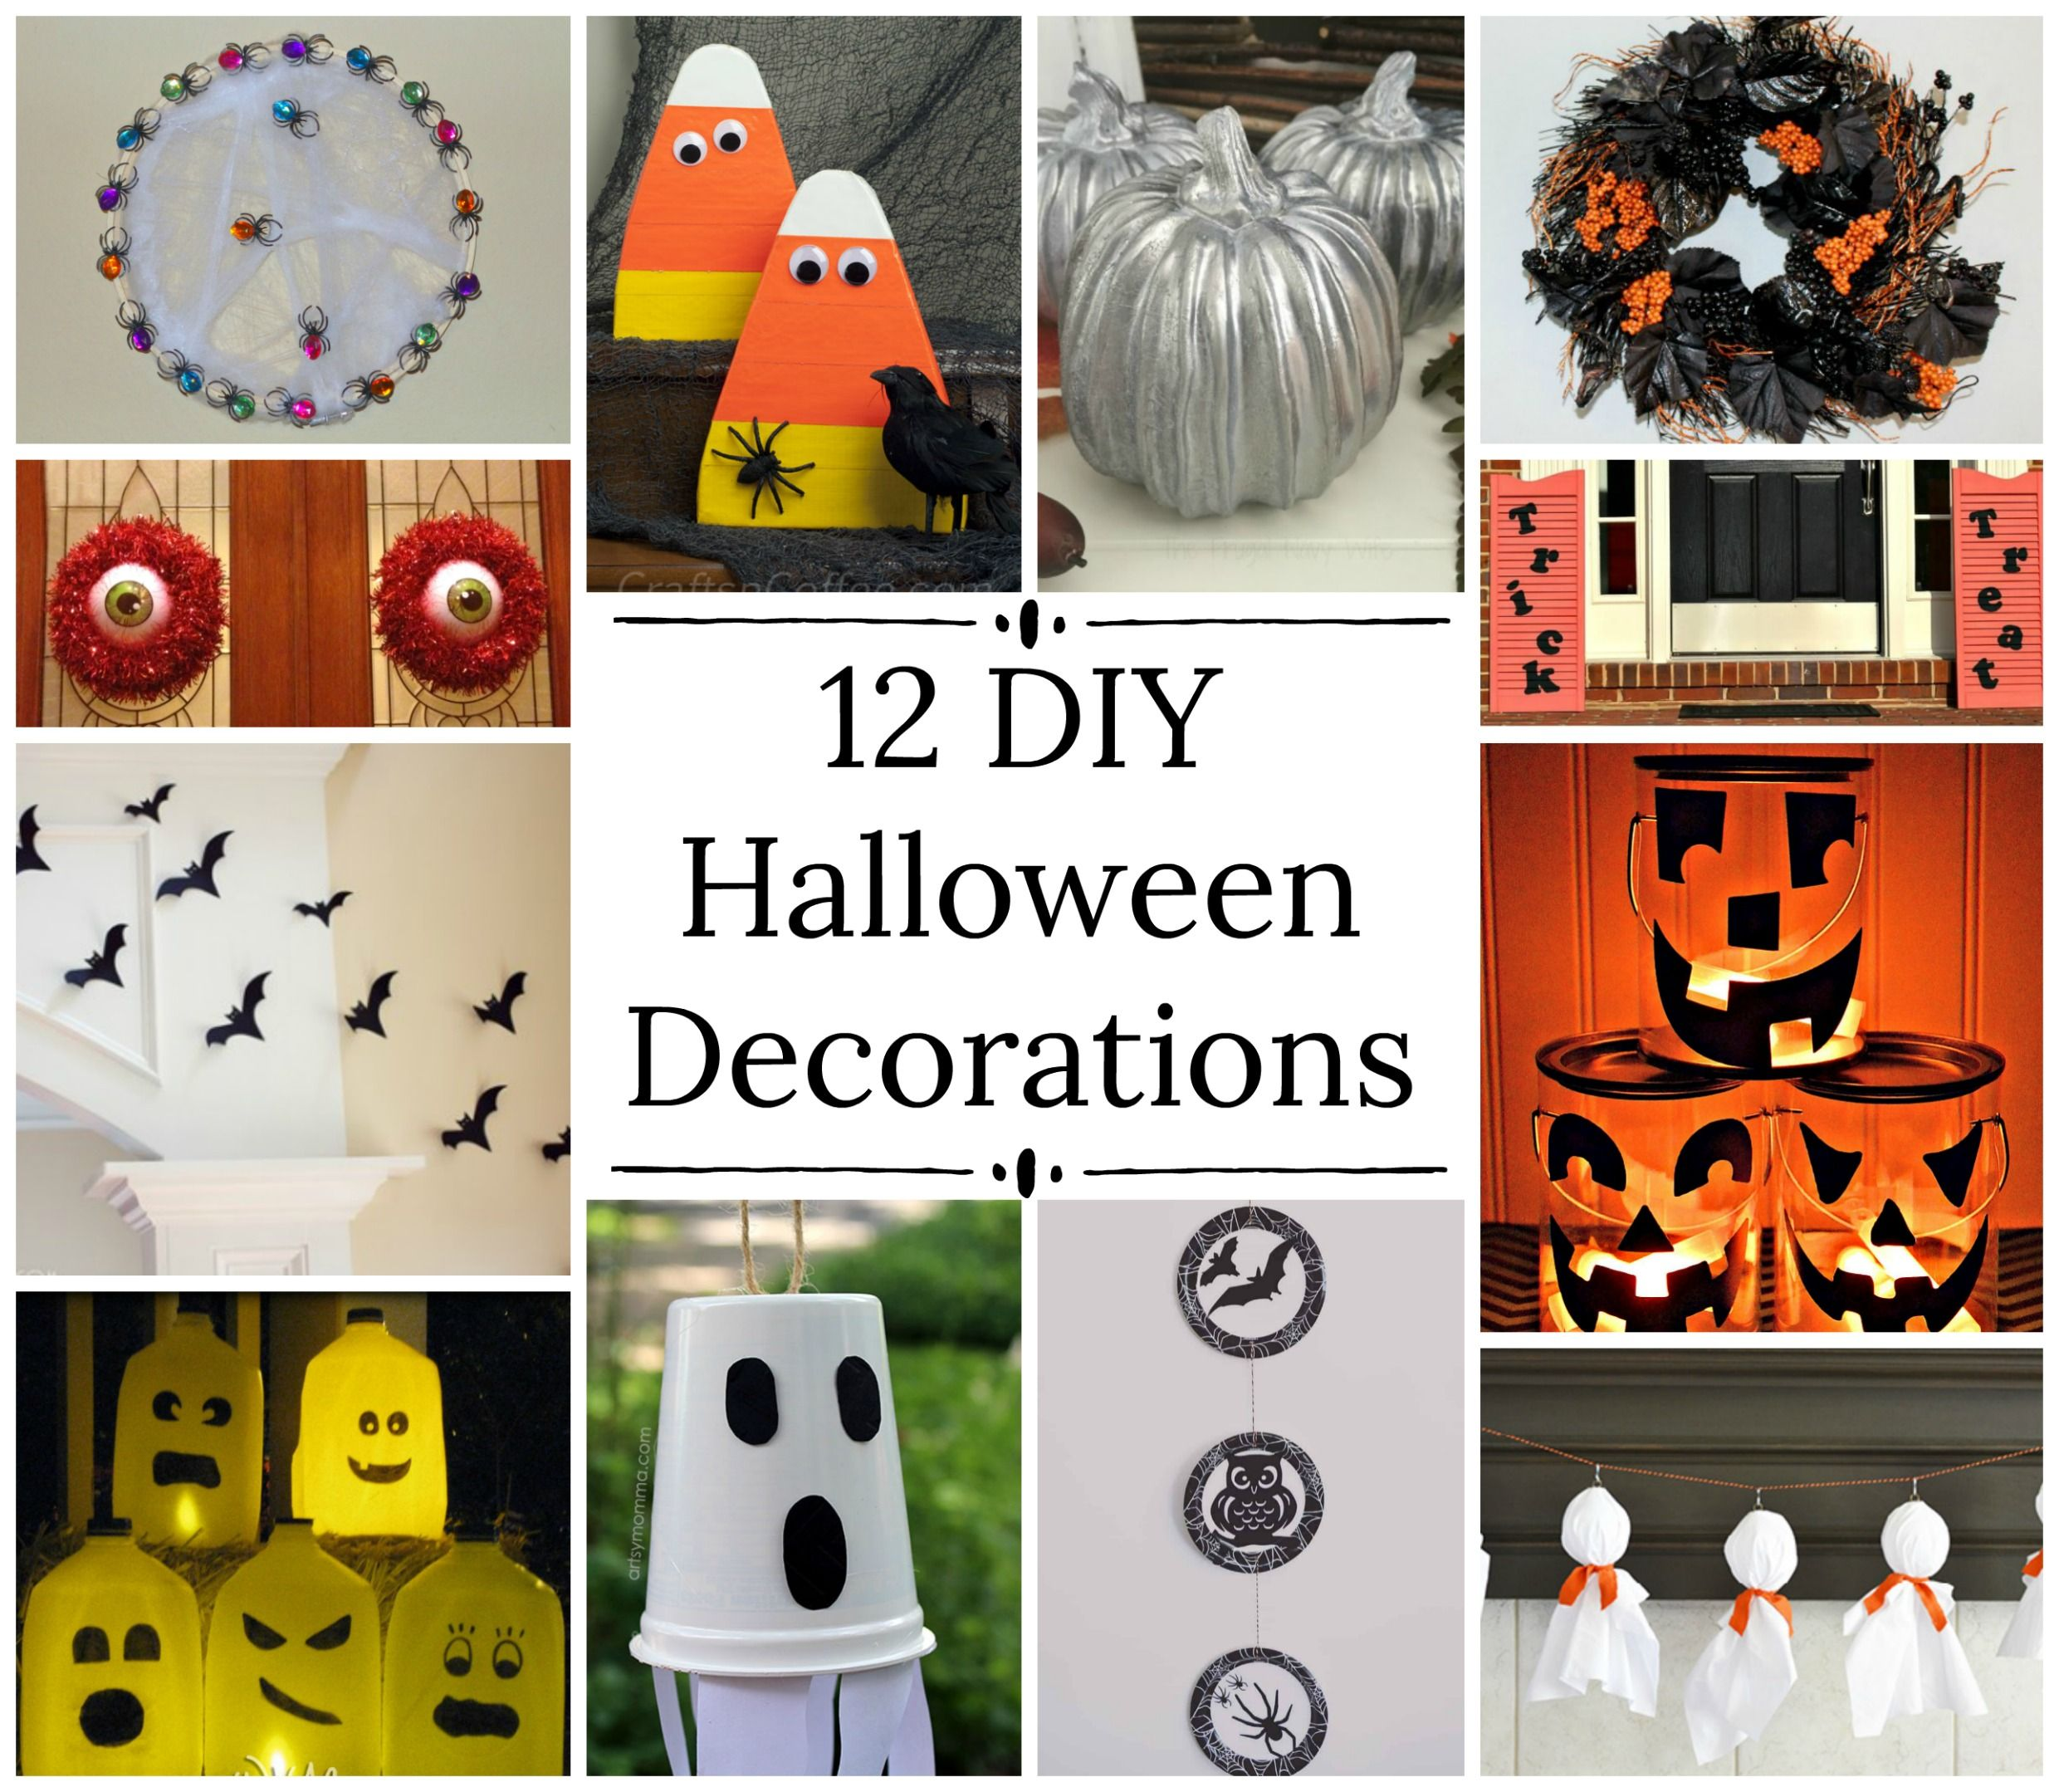 12 Easy DIY Halloween Decorations With images